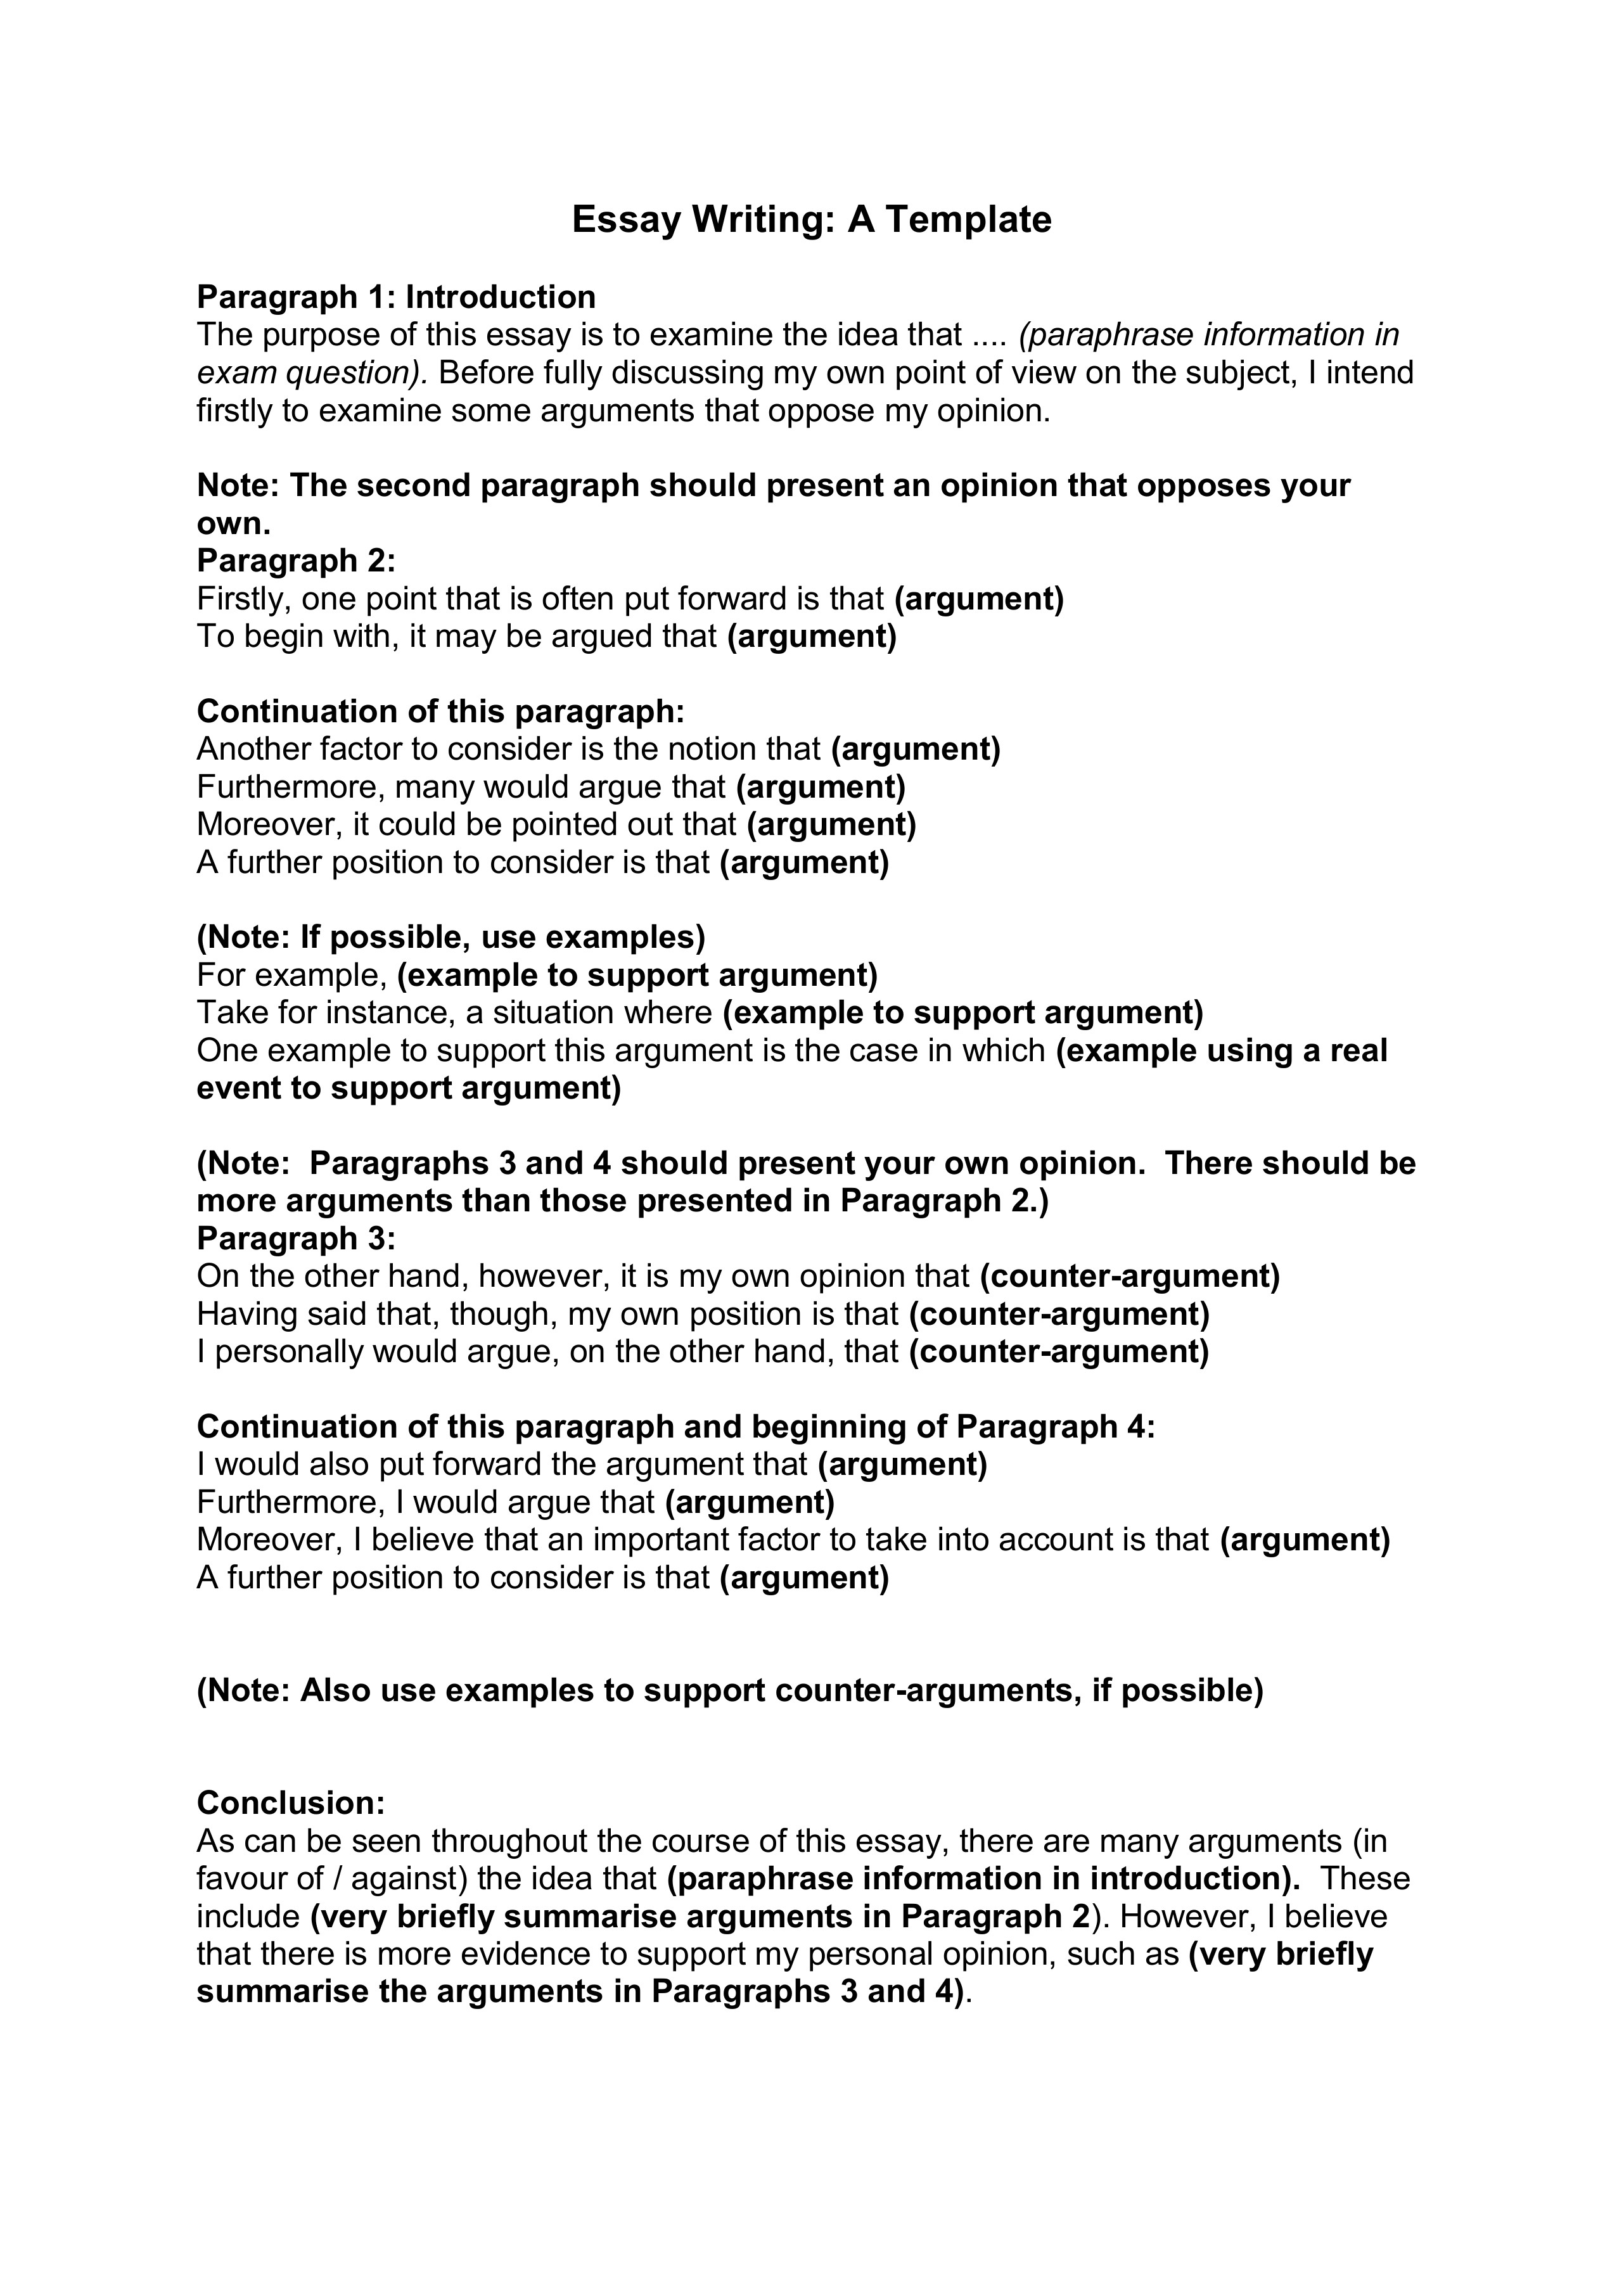 021 Essay Writing Template For Part How To Start Off Body Paragraph In An Impressive A The First Words Full